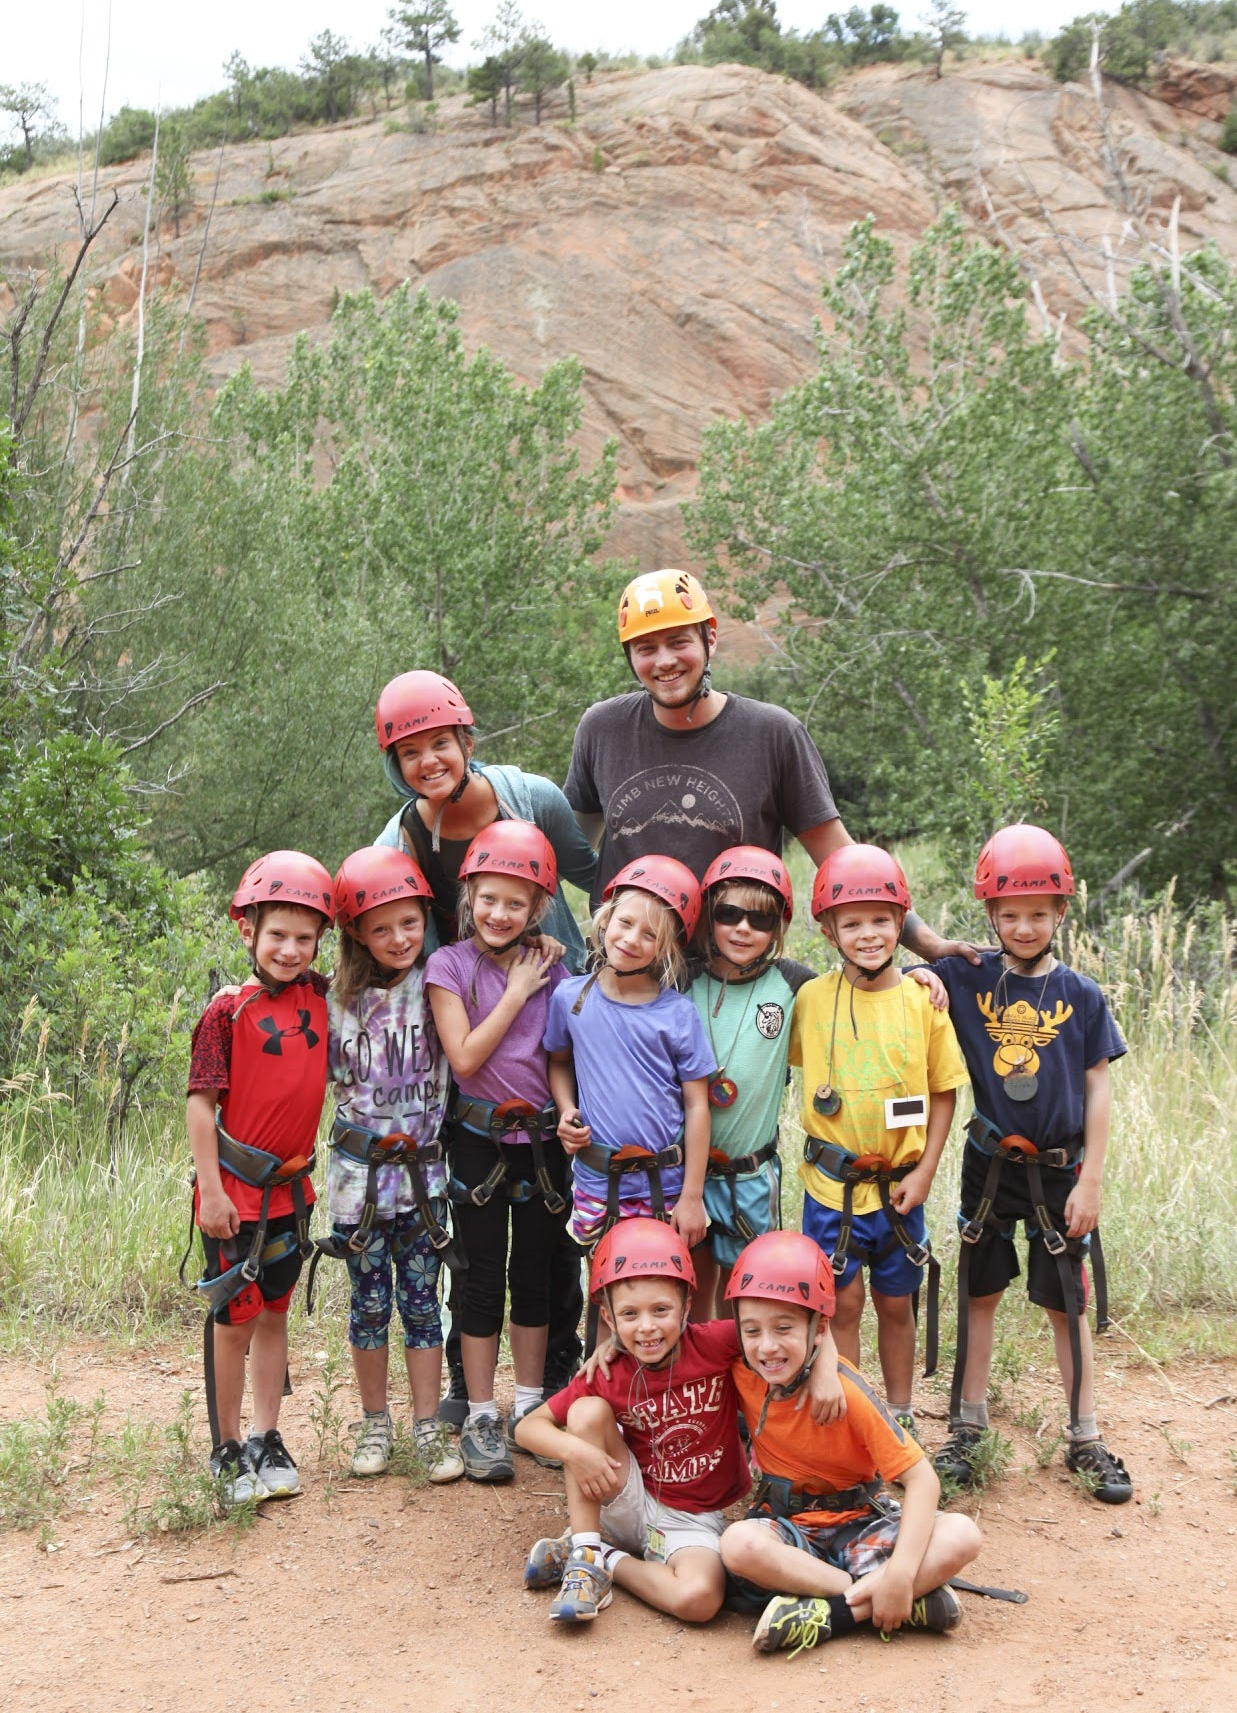 Go West Camps includes adventure activities in our summer day camps and teen programs. These activities give kids the opportunity to build skills and challenge themselves.